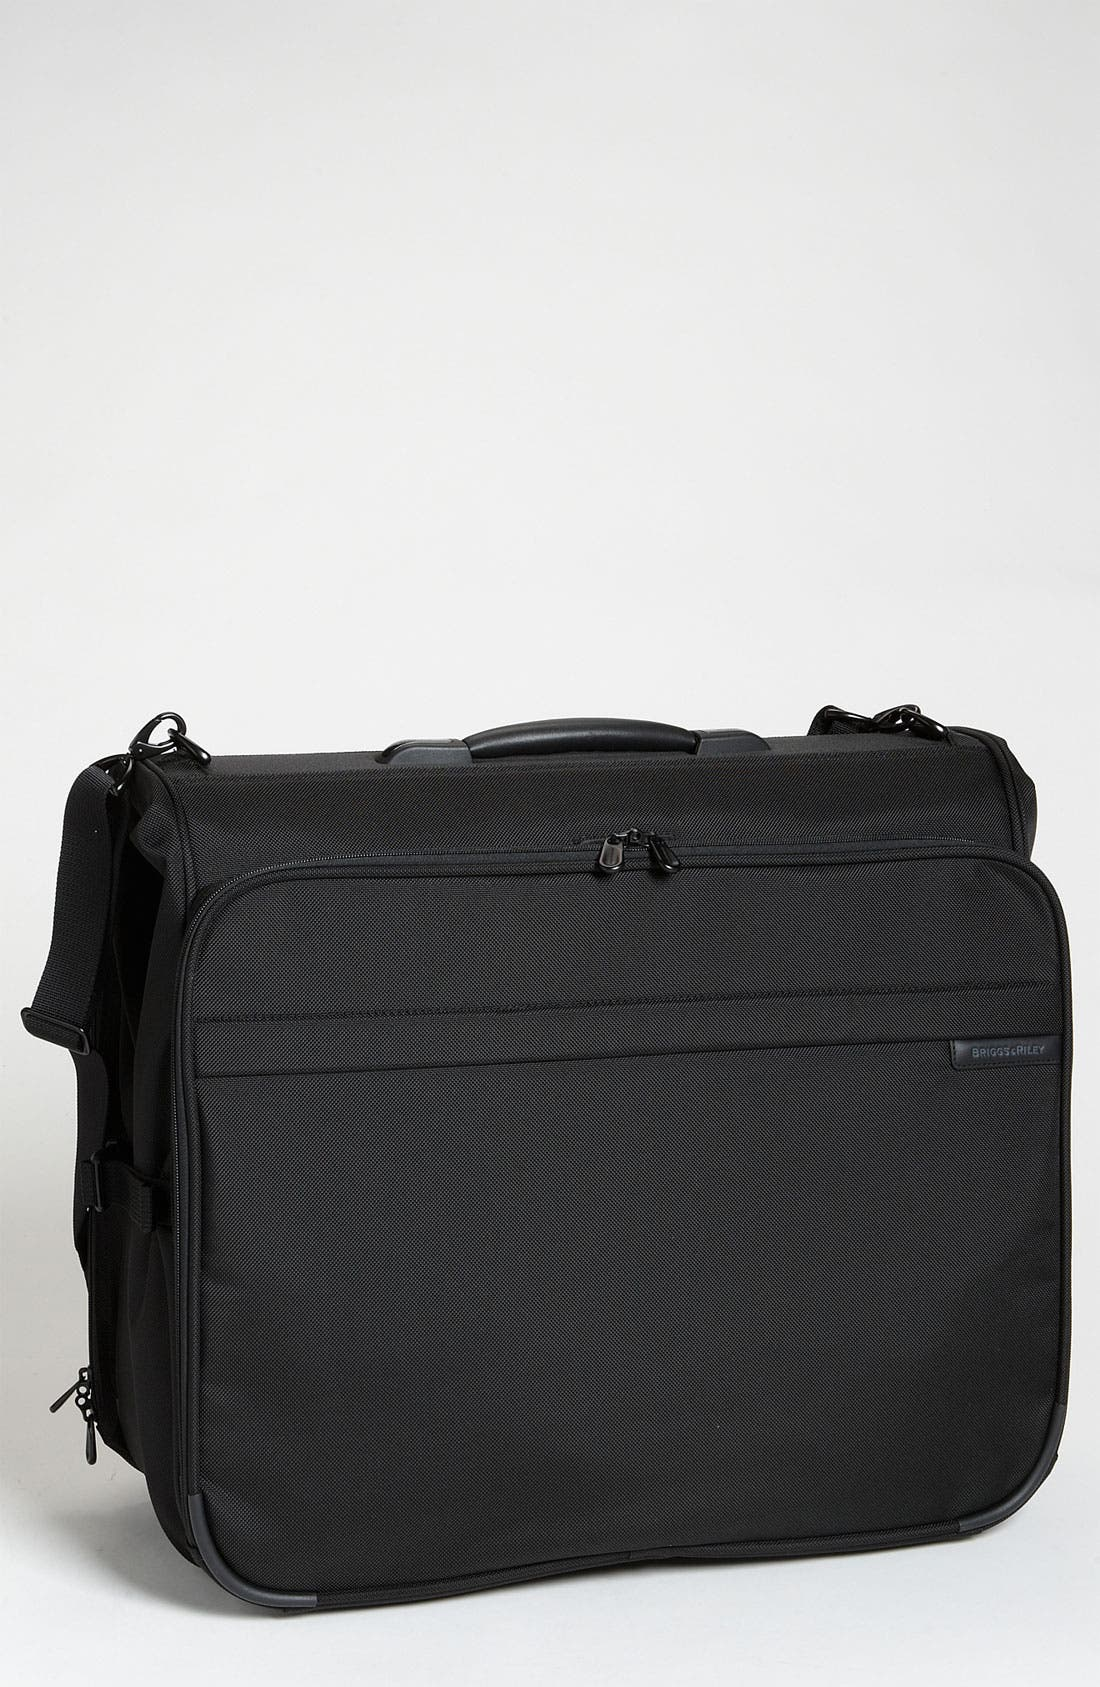 Alternate Image 1 Selected - Briggs & Riley 'Baseline - Deluxe' Garment Bag (22 Inch)